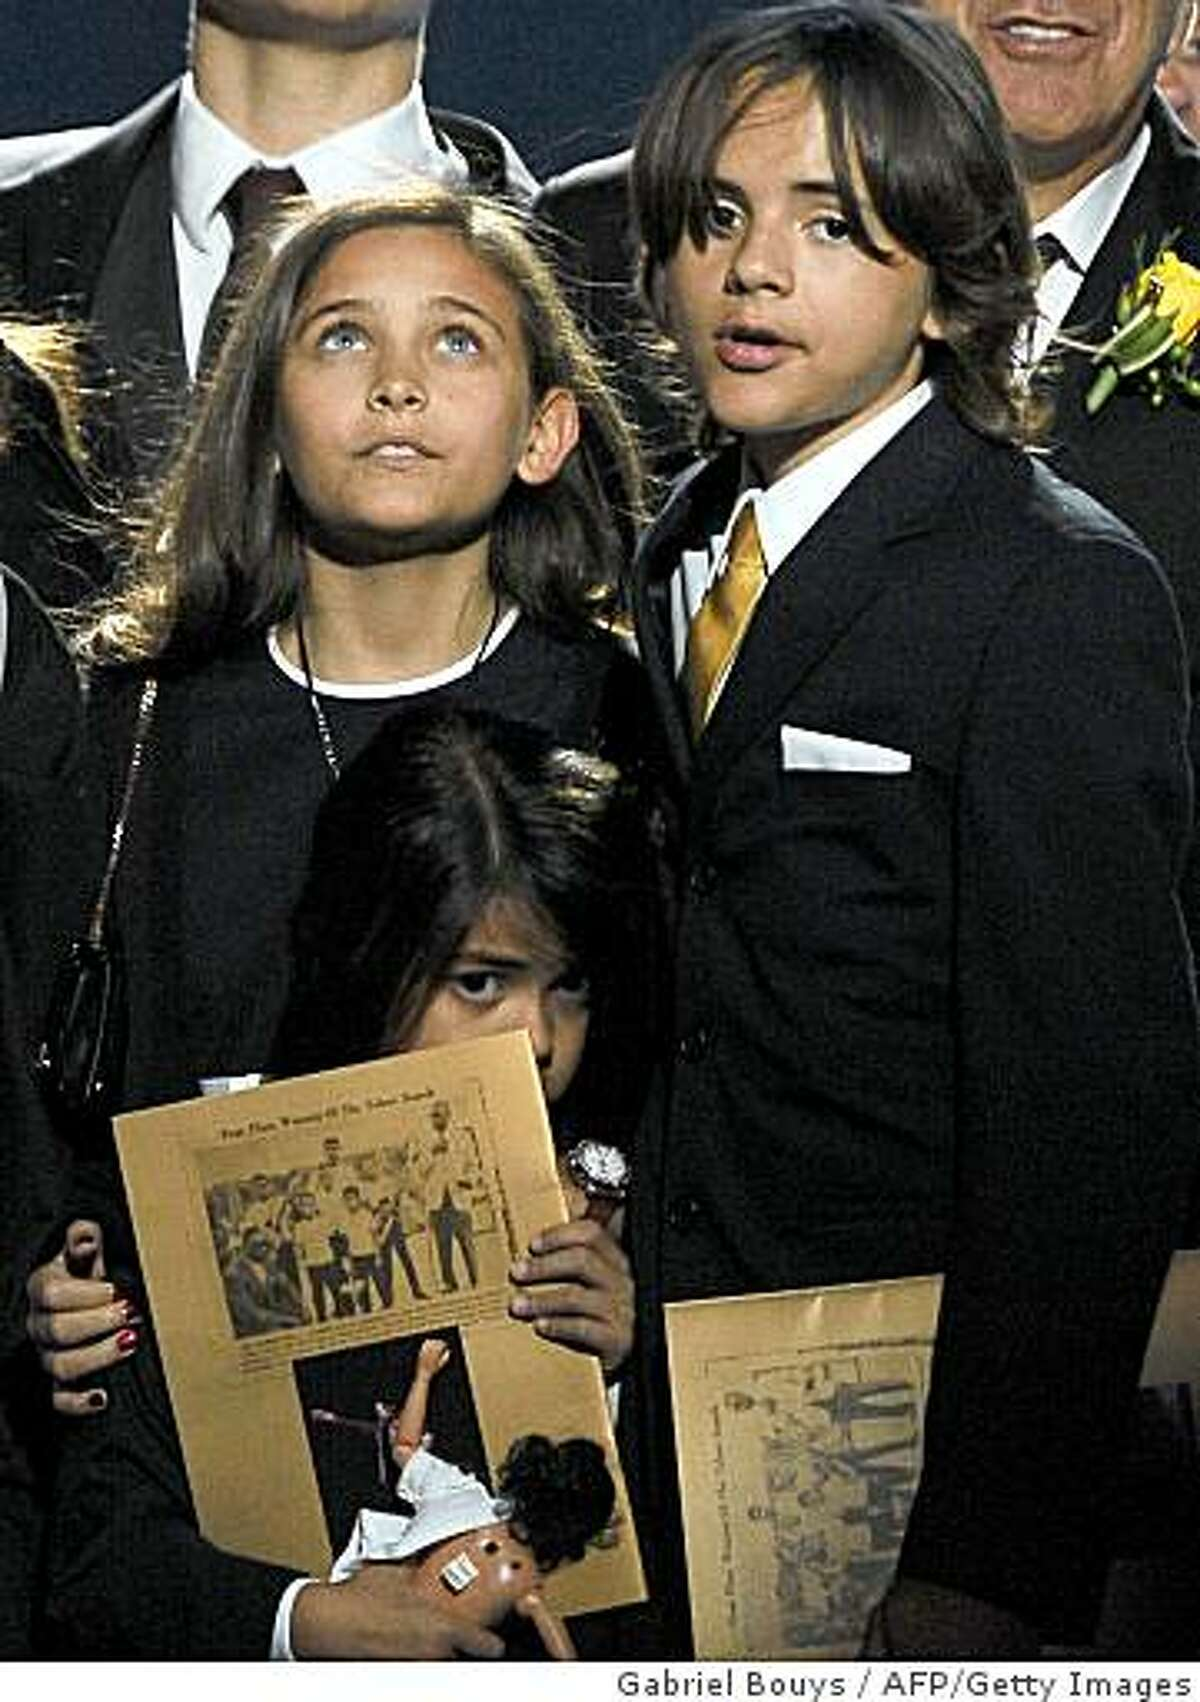 Michael Jackson's children from left Paris Michael Katherine Jackson (L), Prince Michael Jackson II (also known as Blanket) and Prince Michael Jackson I stand during a memorial service for their father, music legend Michael Jackson, at the Staples Center in Los Angeles on July 7, 2009. AFP PHOTO/GABRIEL BOUYS/POOL (Photo credit should read GABRIEL BOUYS/AFP/Getty Images)